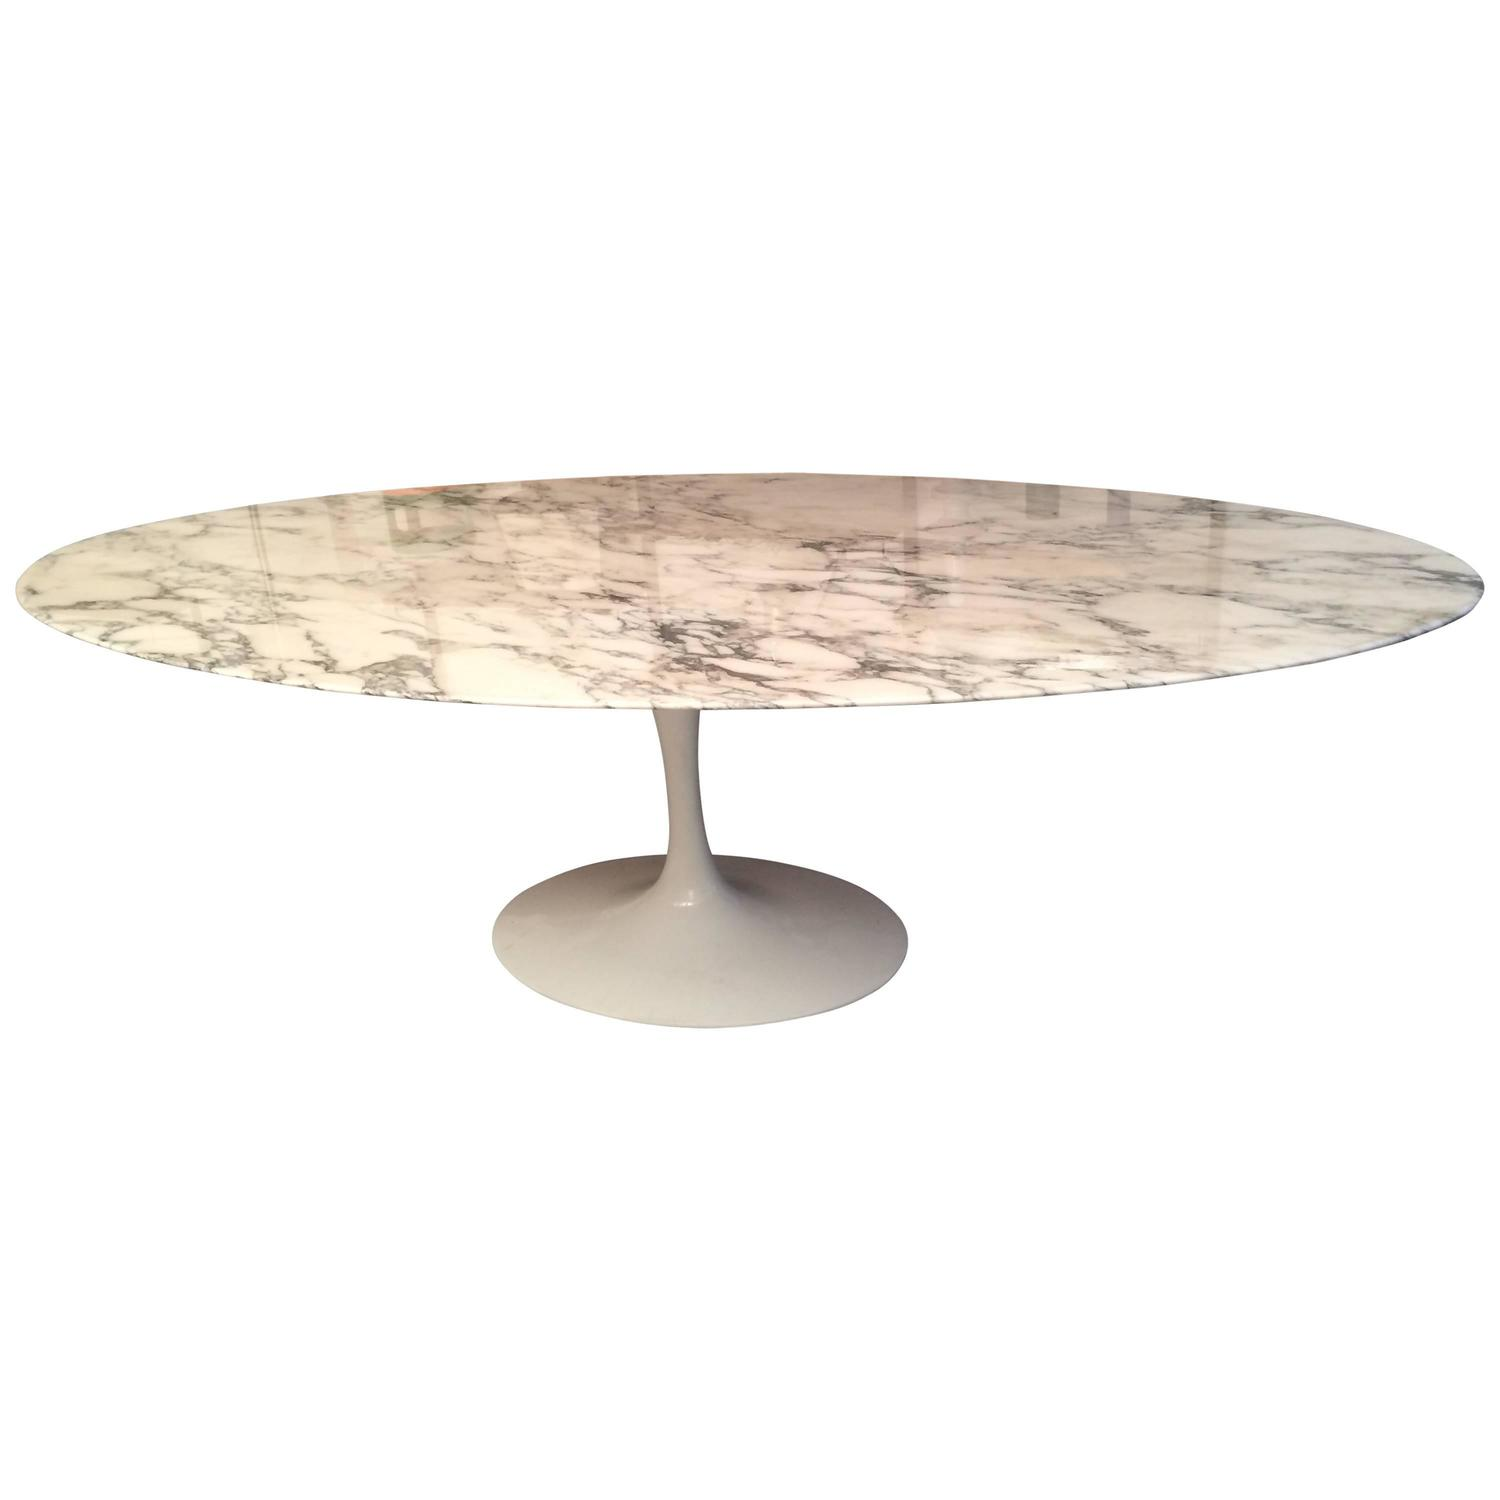 Eero saarinen marble oval dining table at 1stdibs for Oval dining table